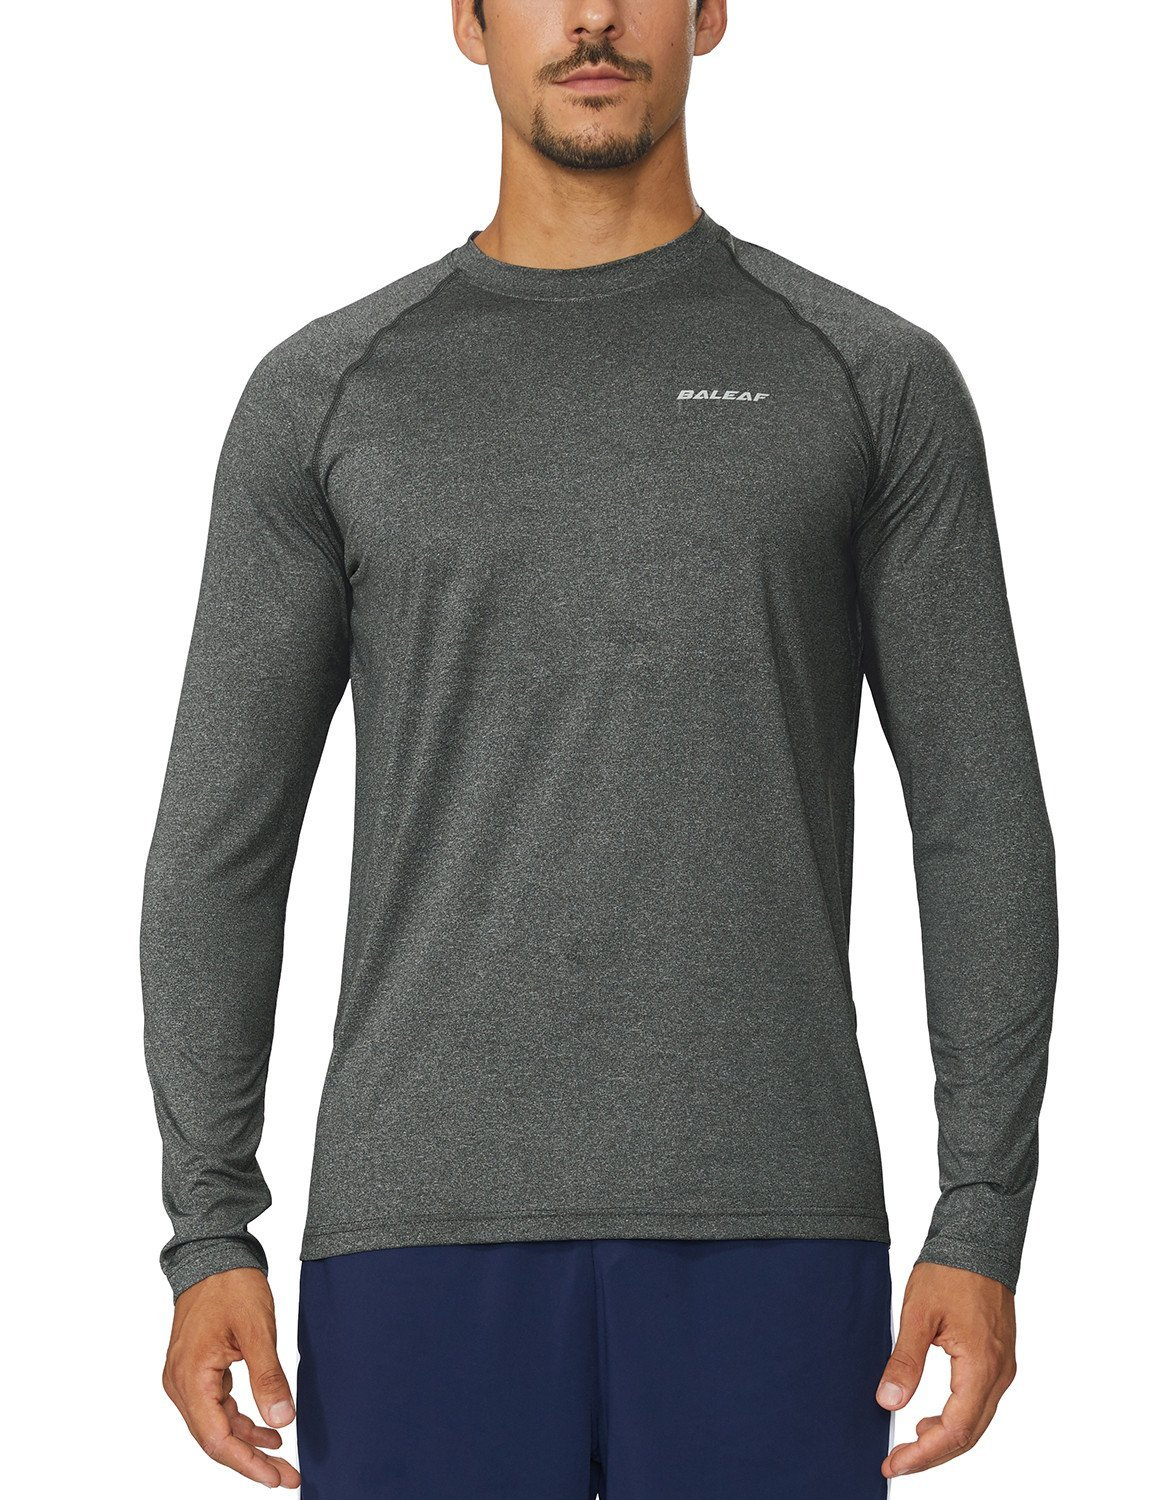 Baleaf Men's Cool Running Workout Long Sleeve T-Shirt Grey Heather LT by Baleaf